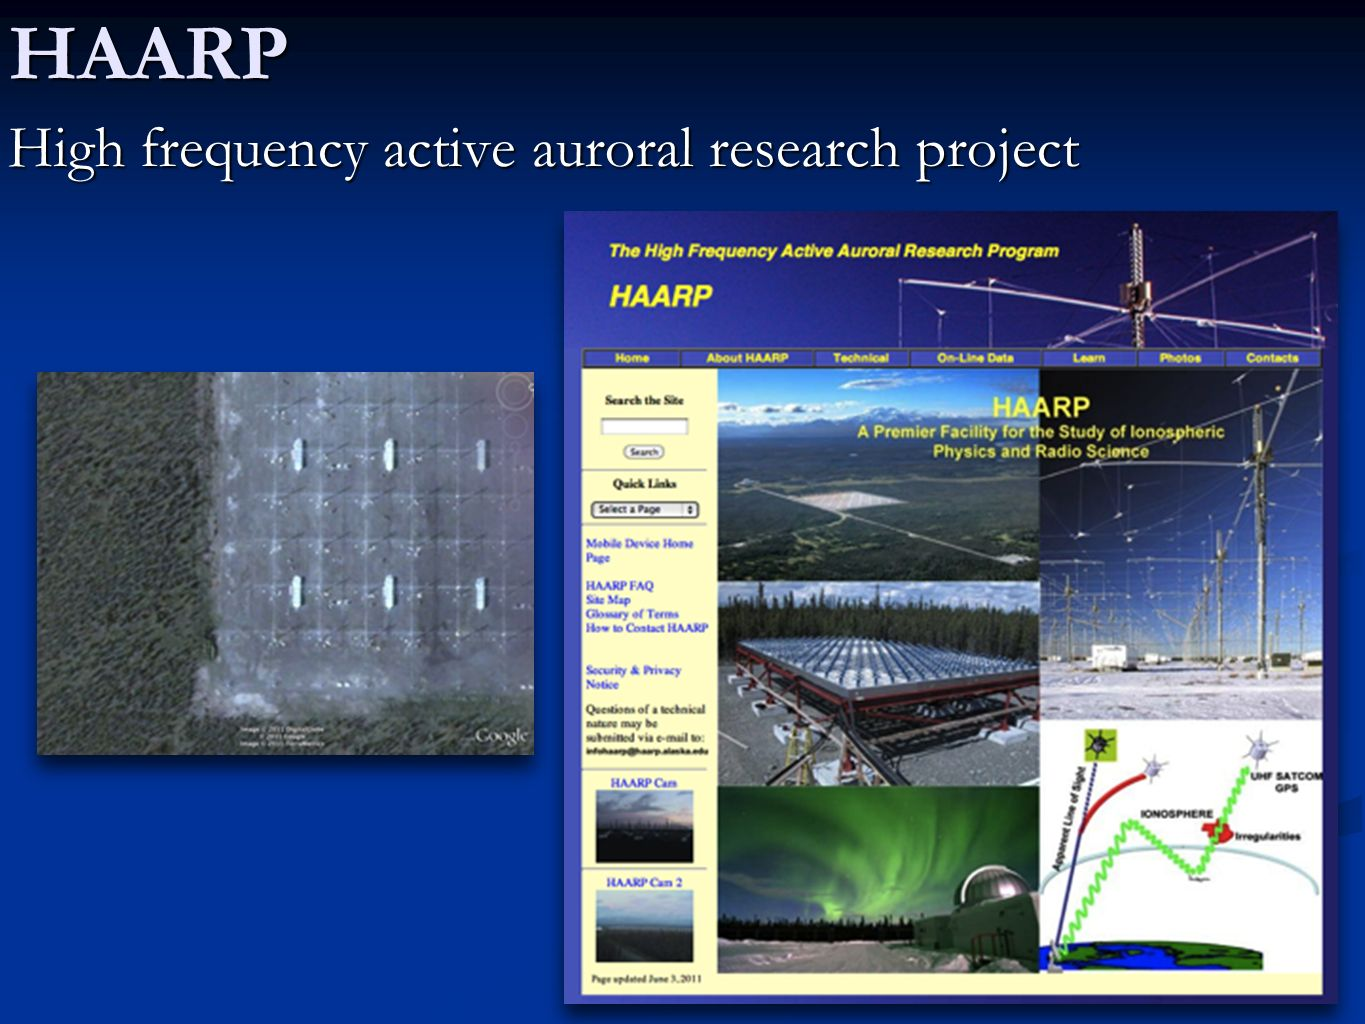 HAARP High frequency active auroral research project